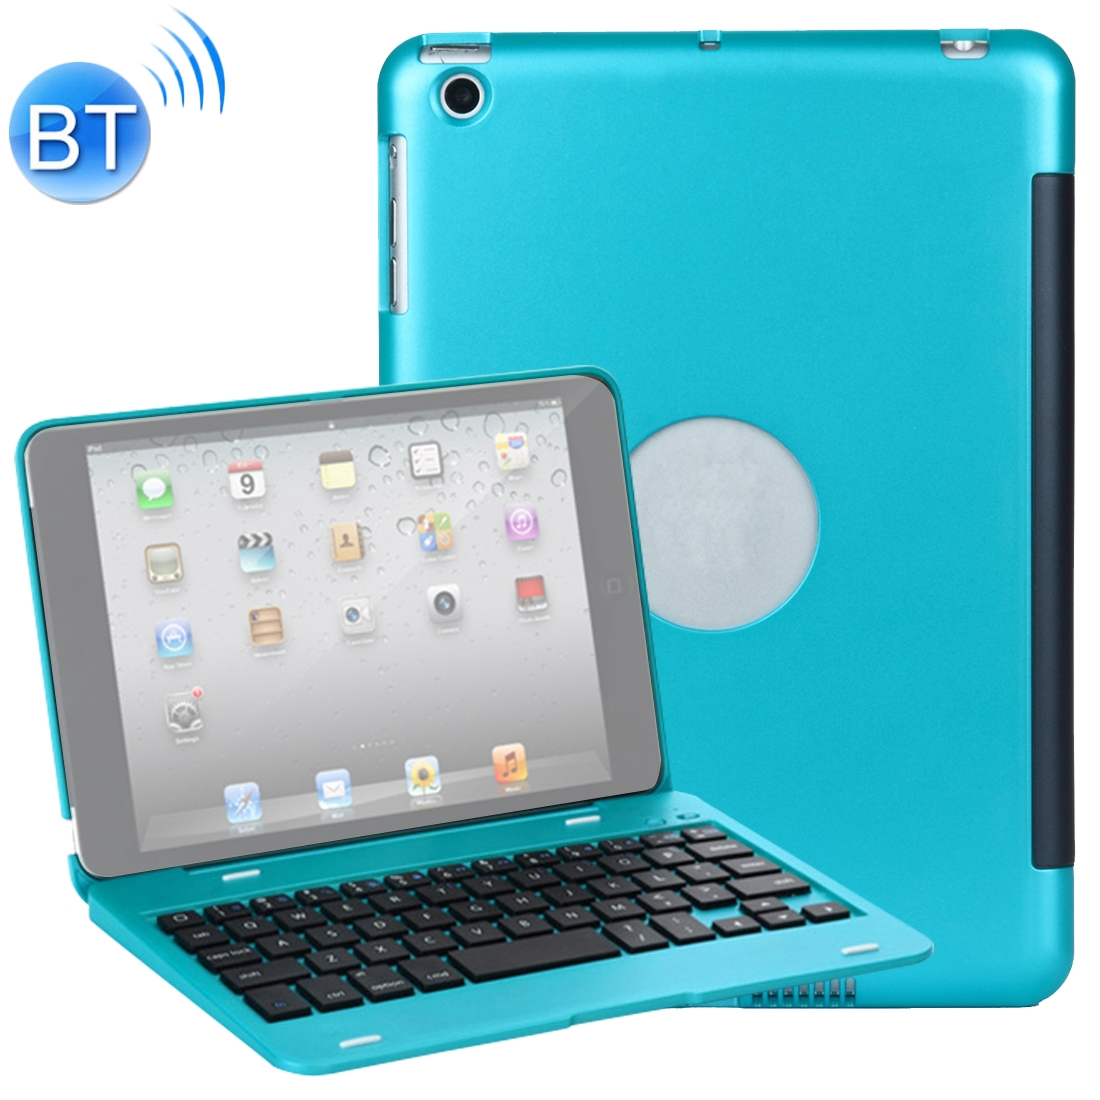 iPad Mini Case With Keyboard For iPad Mini 1,2 & 3, Protective Case With Bluetooth Keyboard (Blue)